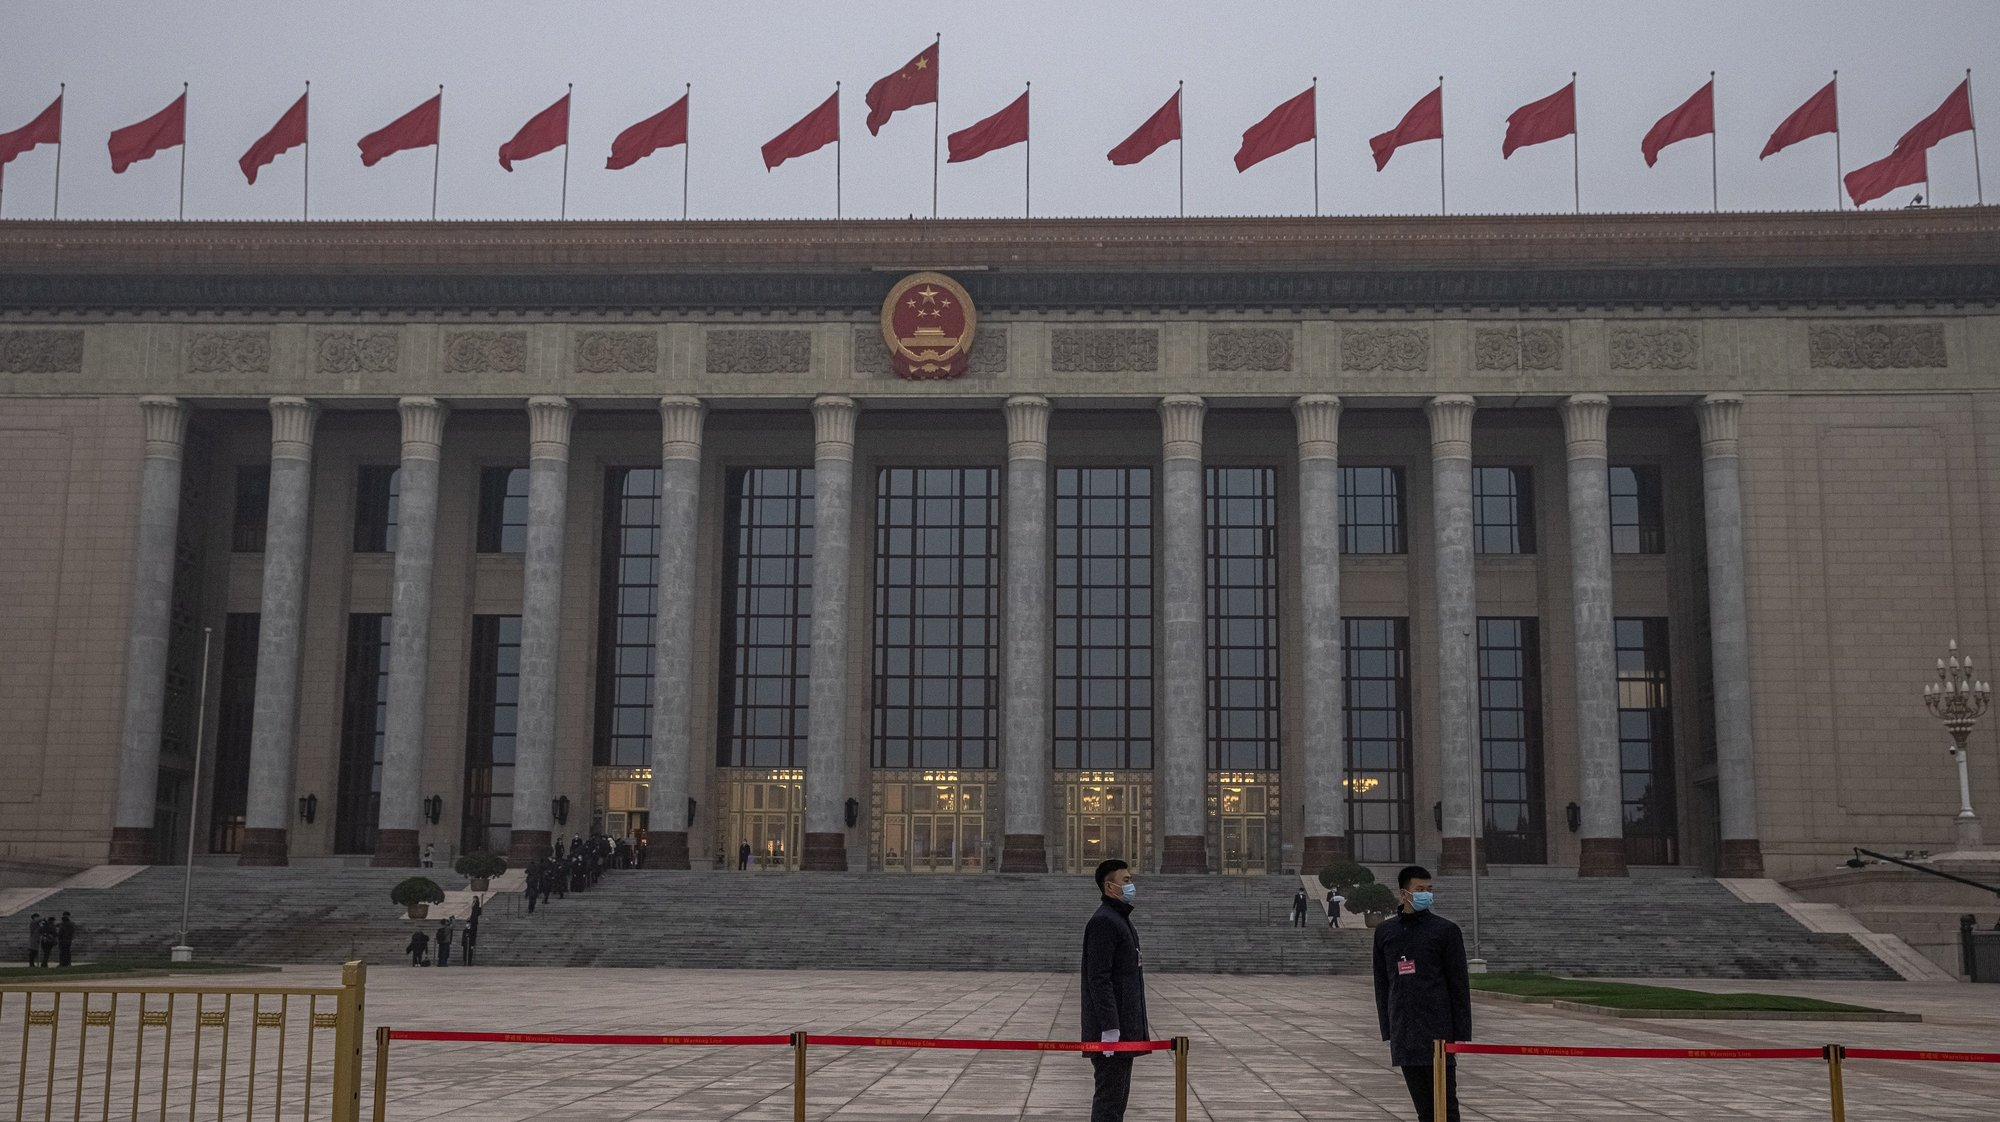 epa09053086 Security officials wearing protective face masks stand guard in front of the Great Hall of the People prior to the opening session of the National People's Congress (NPC), in Beijing, China, 05 March 2021. China holds two major annual political meetings, The National People's Congress (NPC) and the Chinese People's Political Consultative Conference (CPPCC) which run alongside and together known as 'Lianghui' or 'Two Sessions'.  EPA/ROMAN PILIPEY